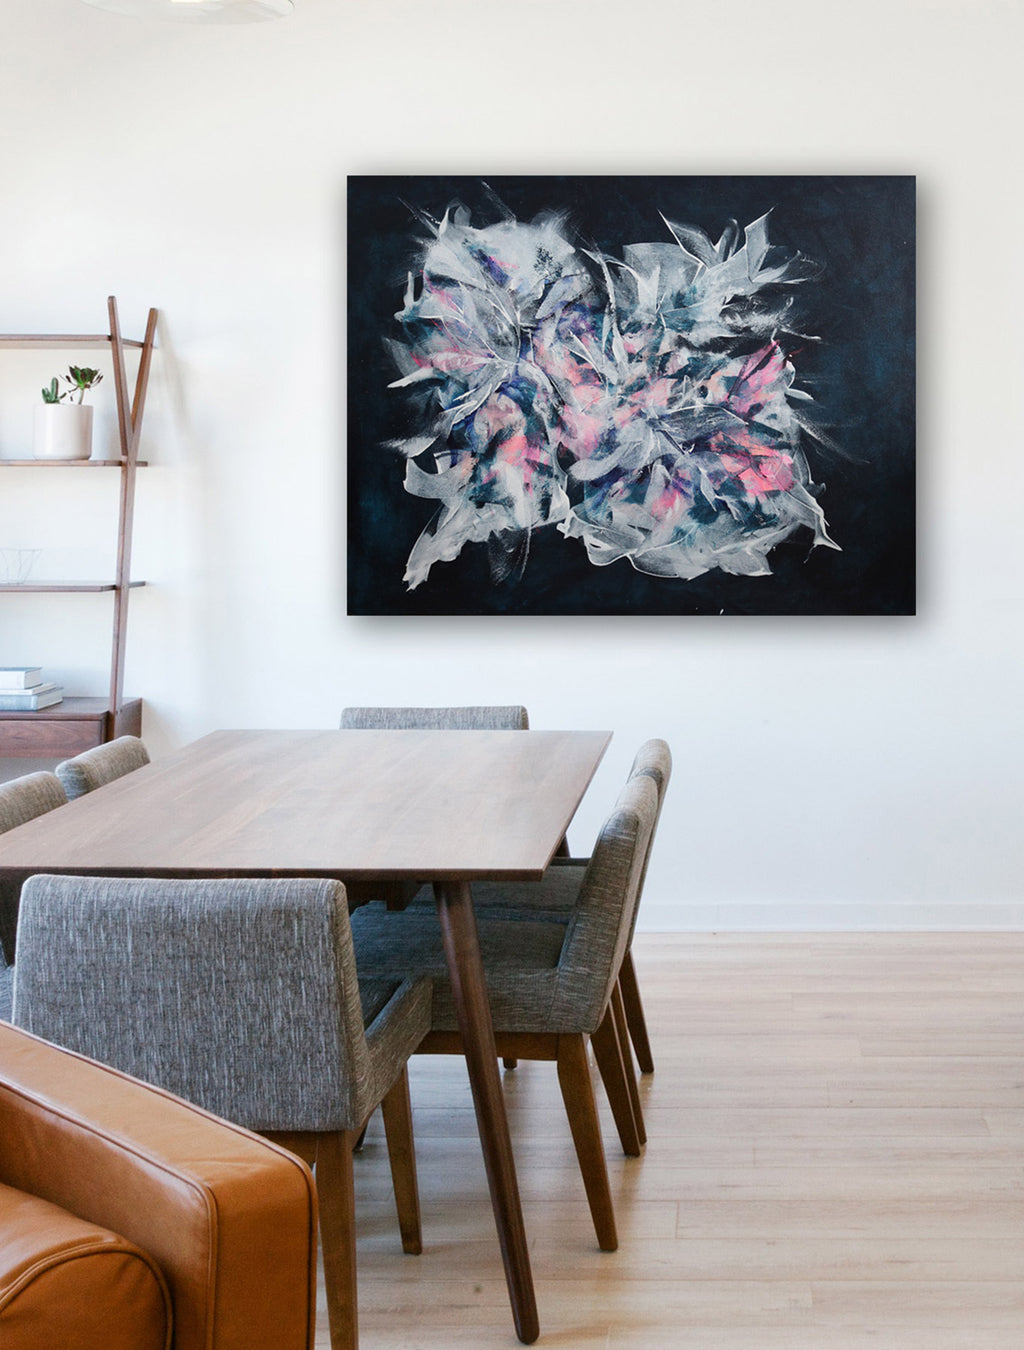 Iced Abstract Painting on wall - by Paige Ring